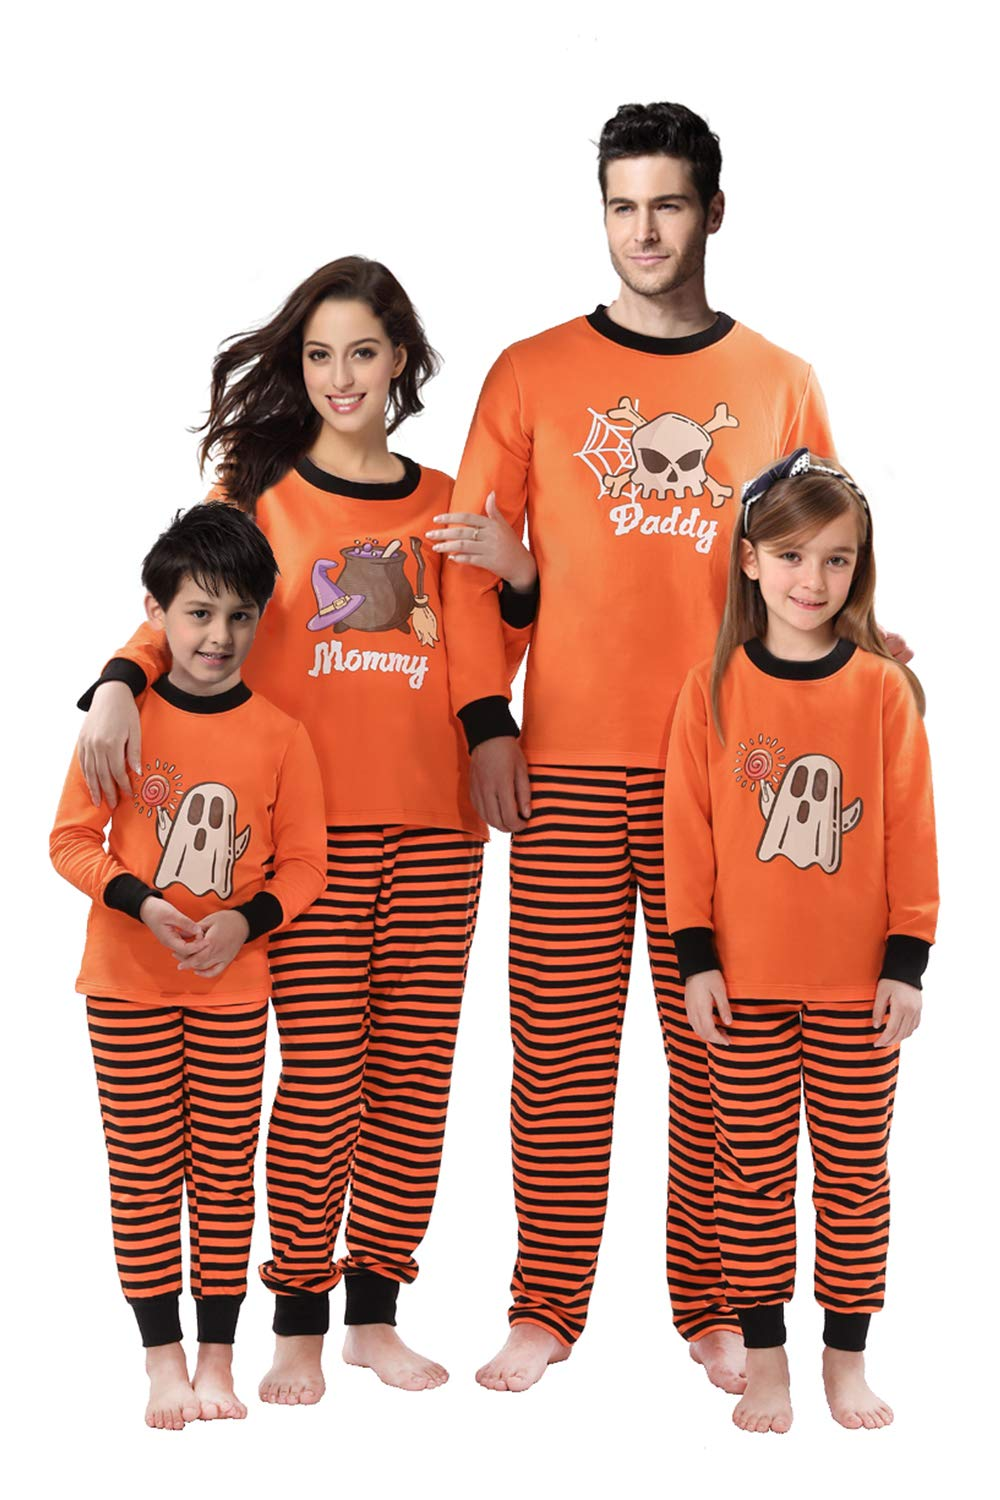 Rnxrbb Halloween Matching Family Pajamas Christmas PJs Set Xmas Sleepwear Cotton Stripe,Men,S